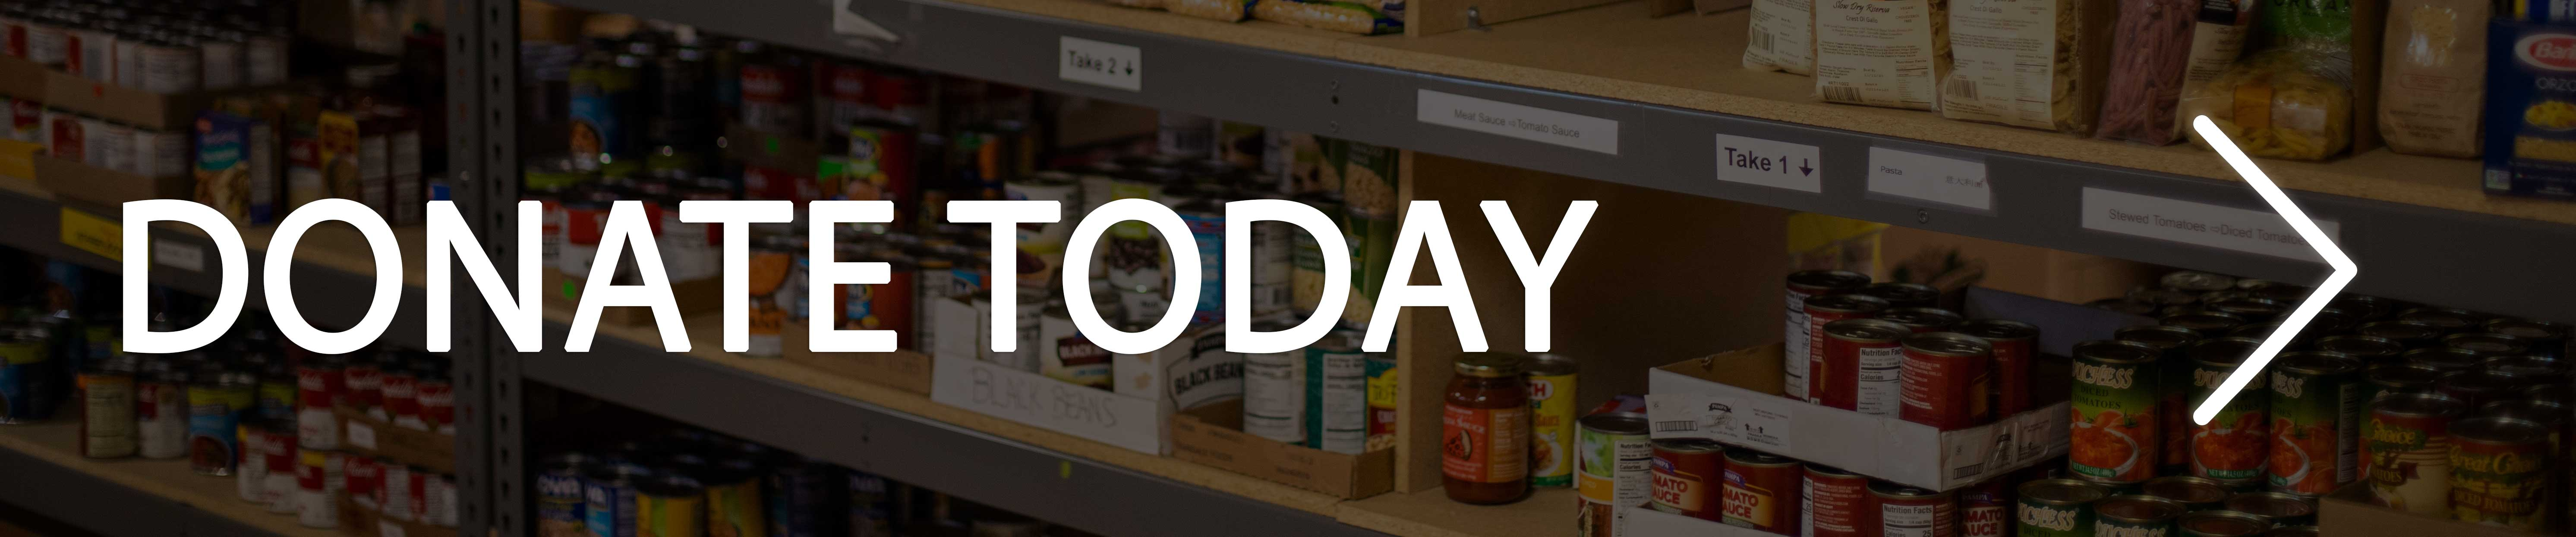 Donate Today text with canned foods displayed behind it